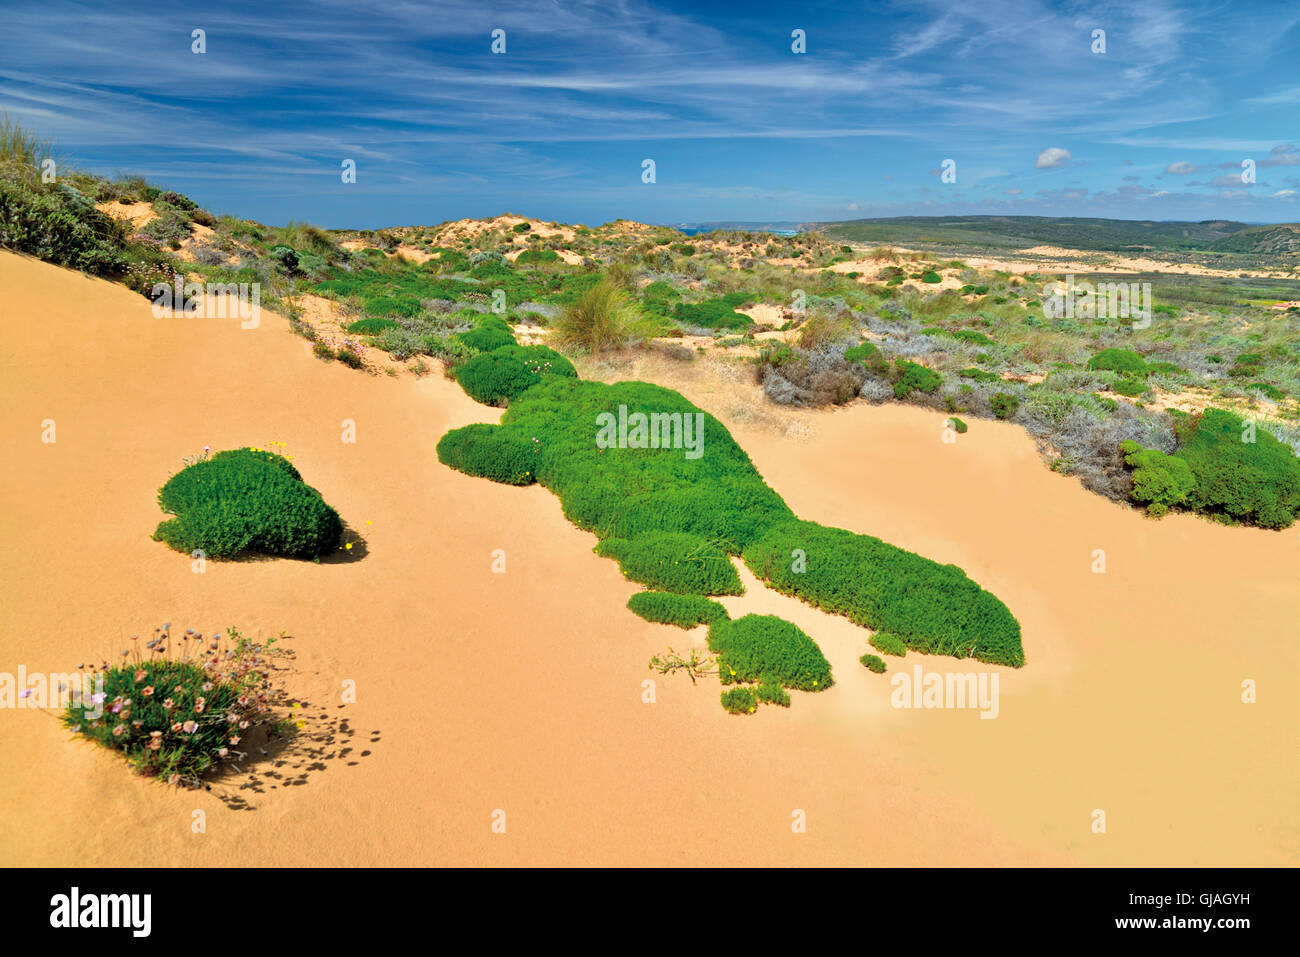 Portugal, Algarve: Sand dunes with coastal vegetation in the Nature Park Costa Vicentina - Stock Image